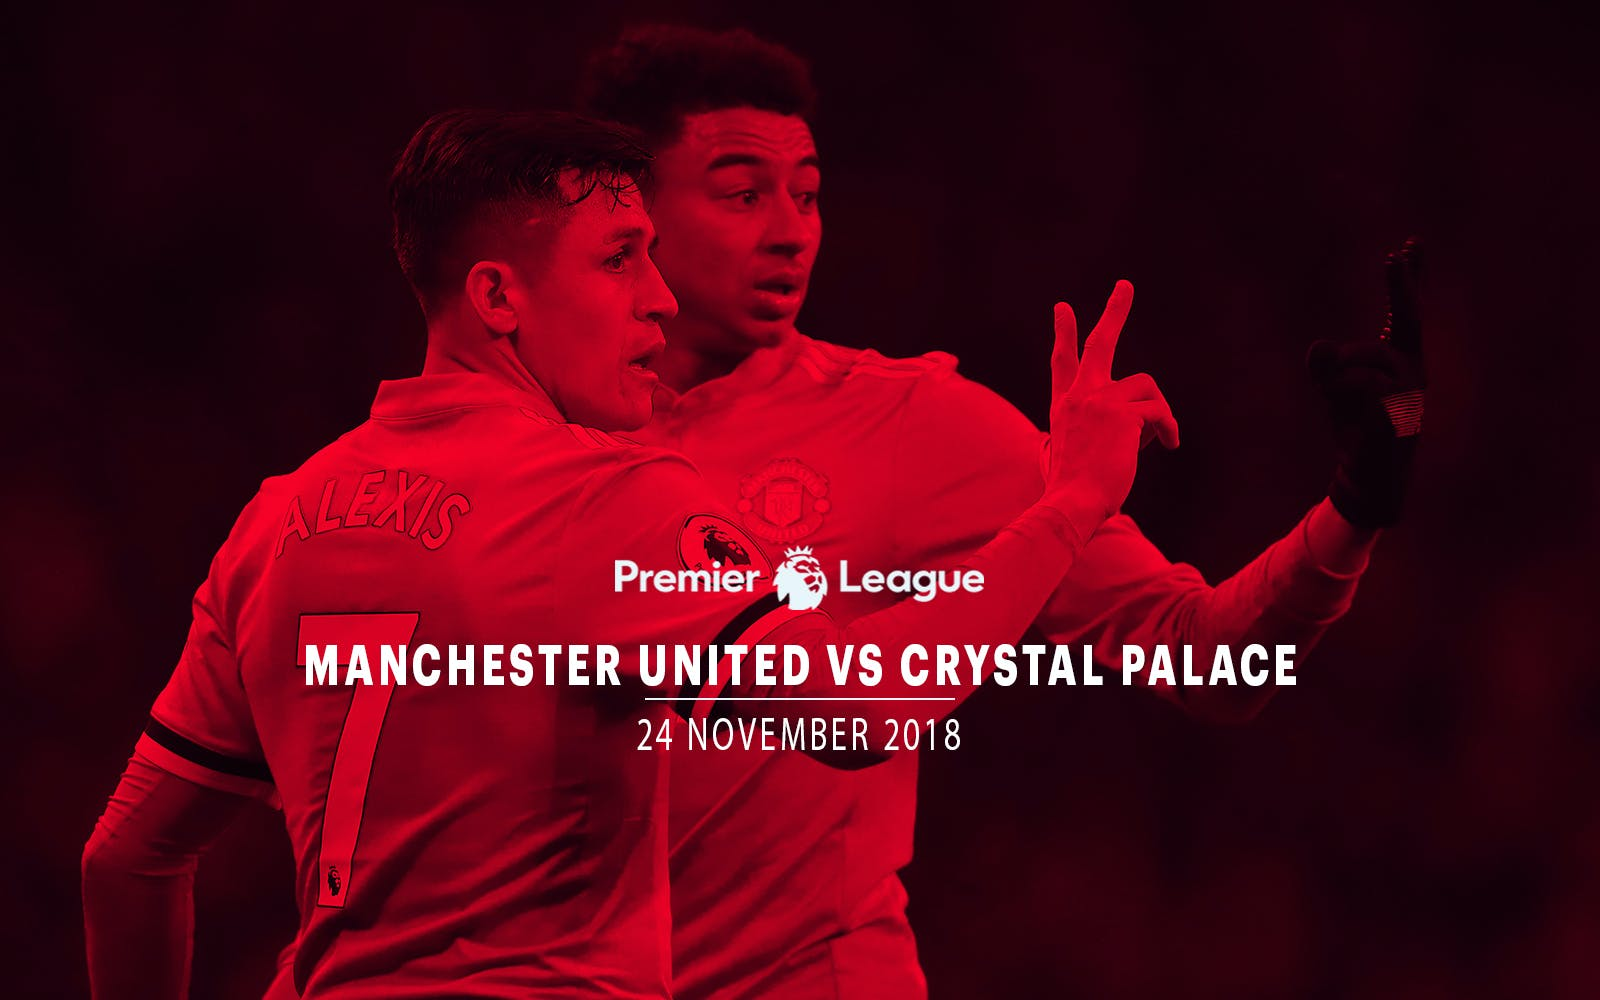 manchester united vs crystal palace-24th nov 2018-1